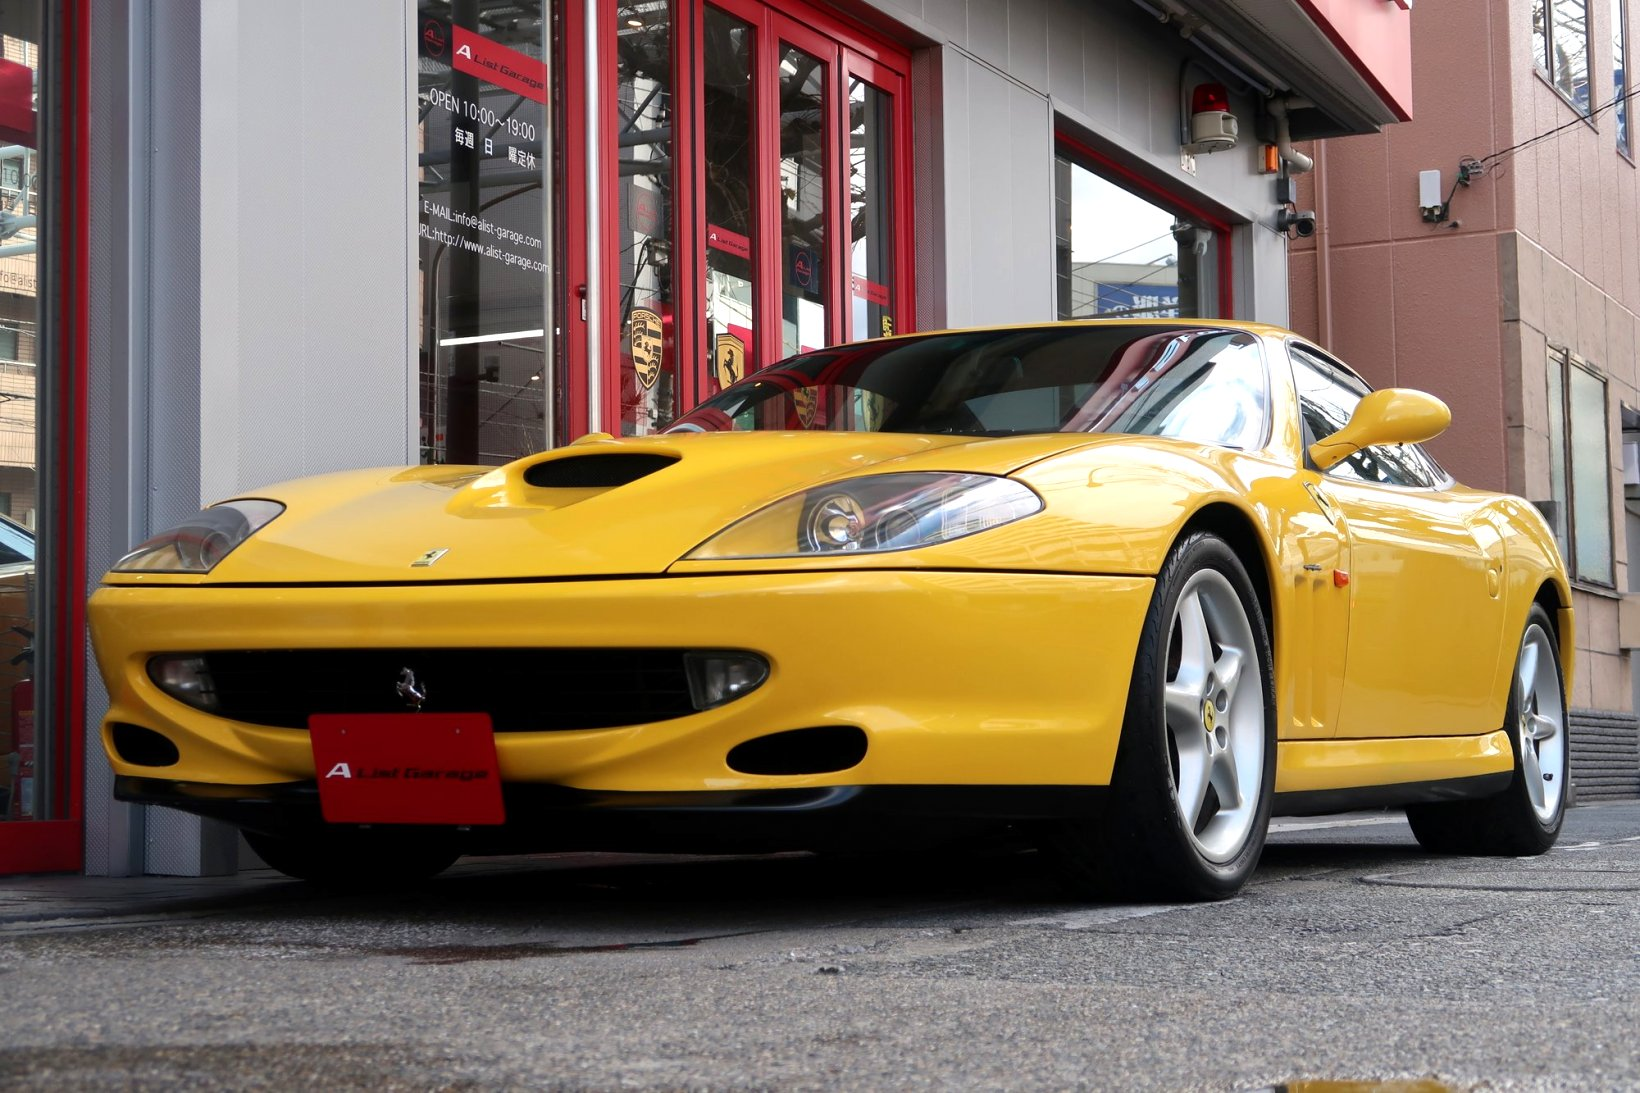 2020 ferrari list Price and Review